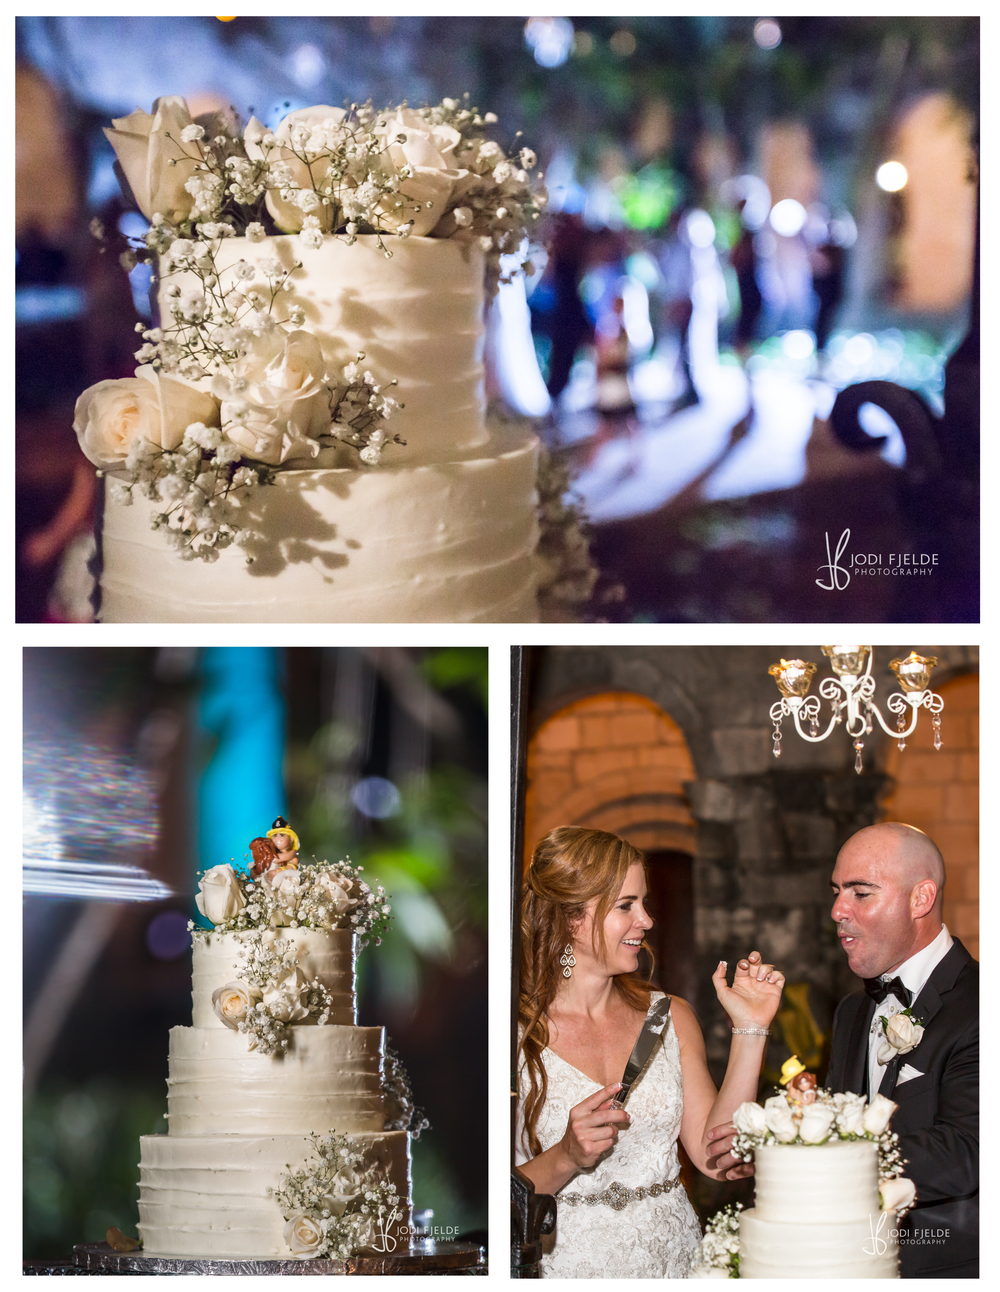 Ancient_Spanish_Monastery_Miami_Florida_wedding_Gio_Iggy_Jodi_Fjelde_Photography_21.jpg